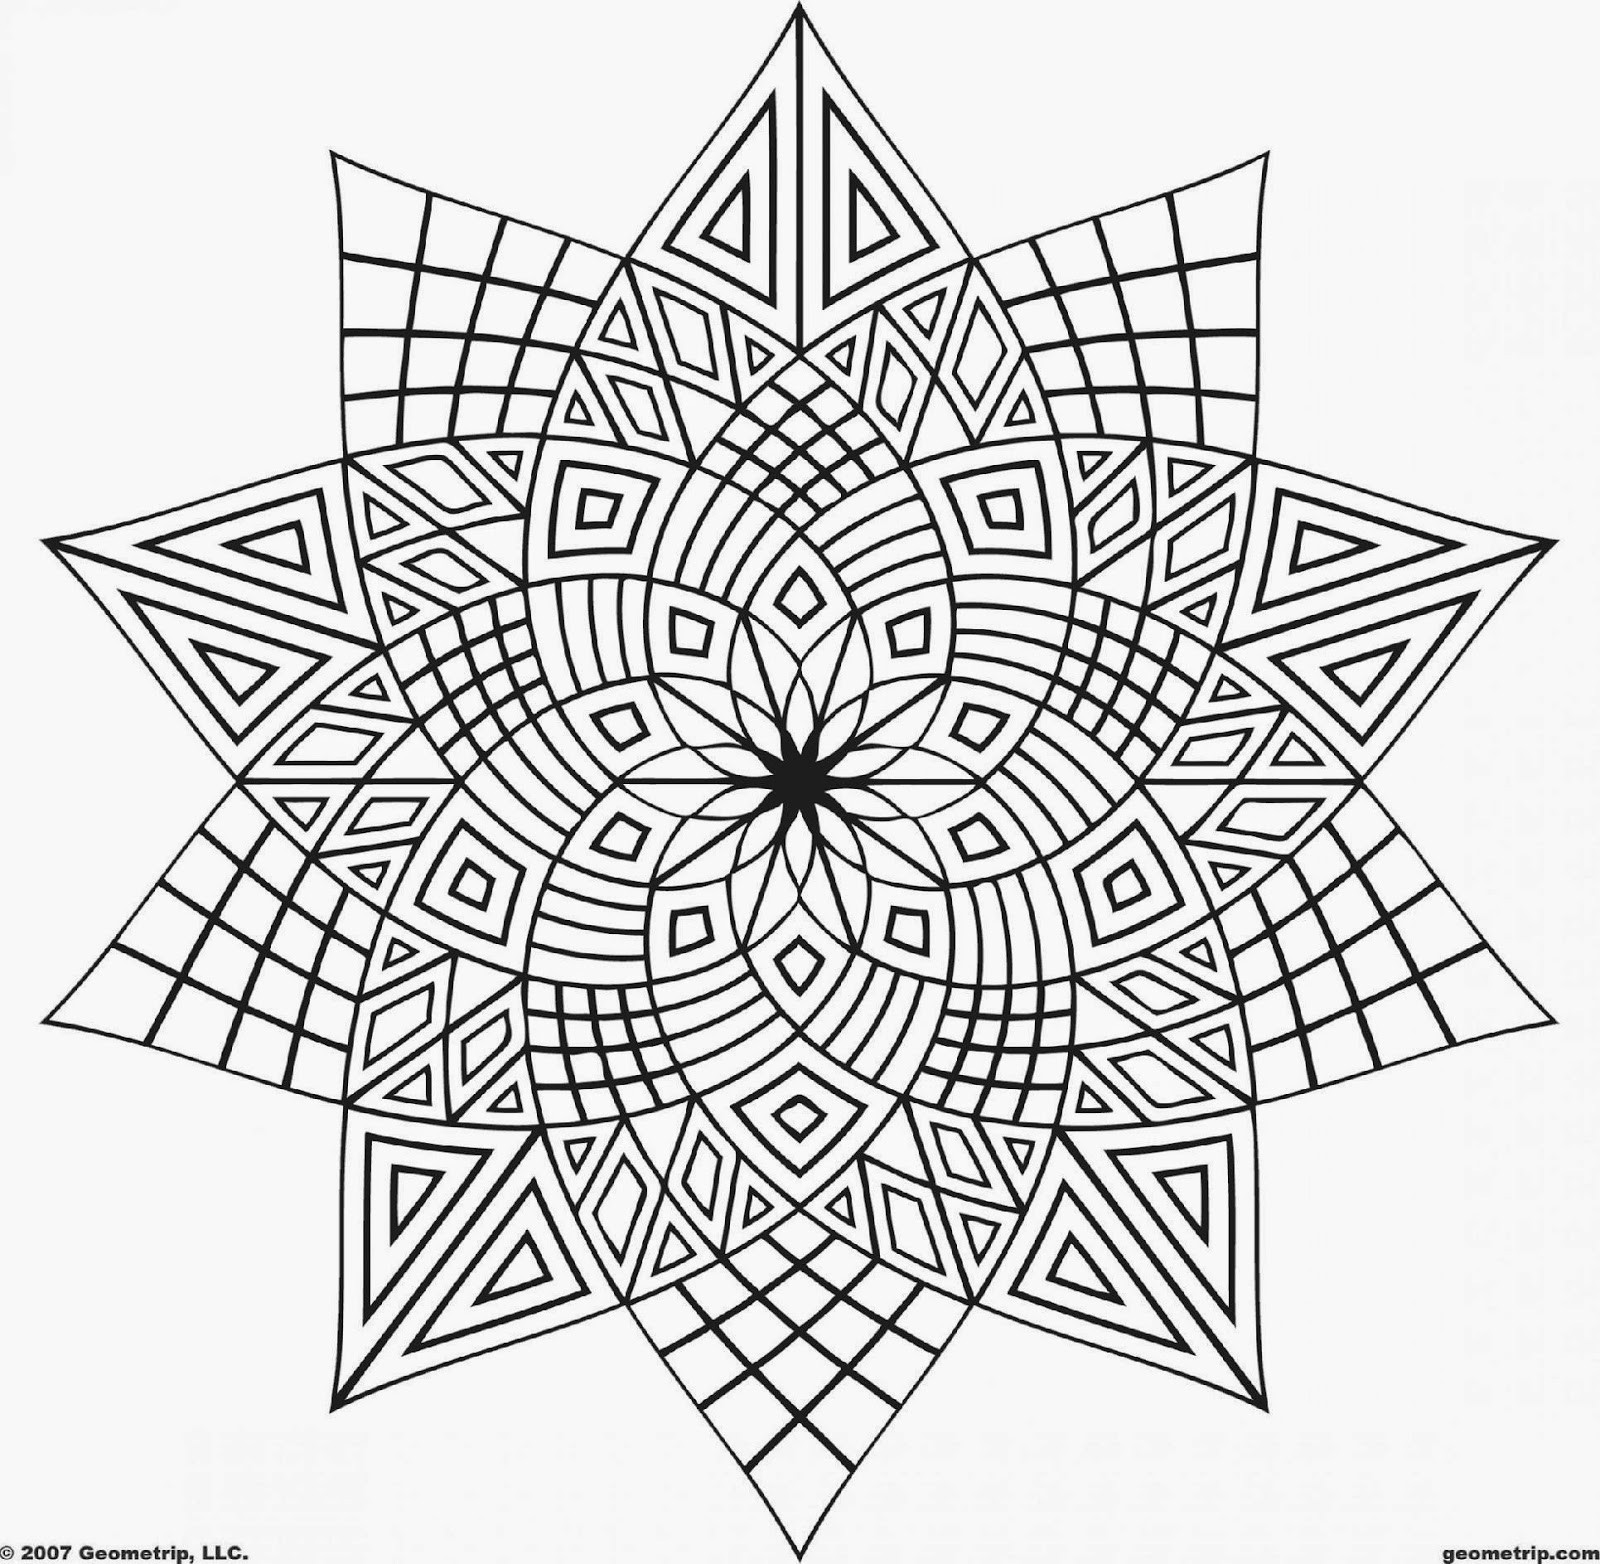 Best ideas about Free Printable Adult Coloring Pages . Save or Pin Awesome Coloring Pages Now.